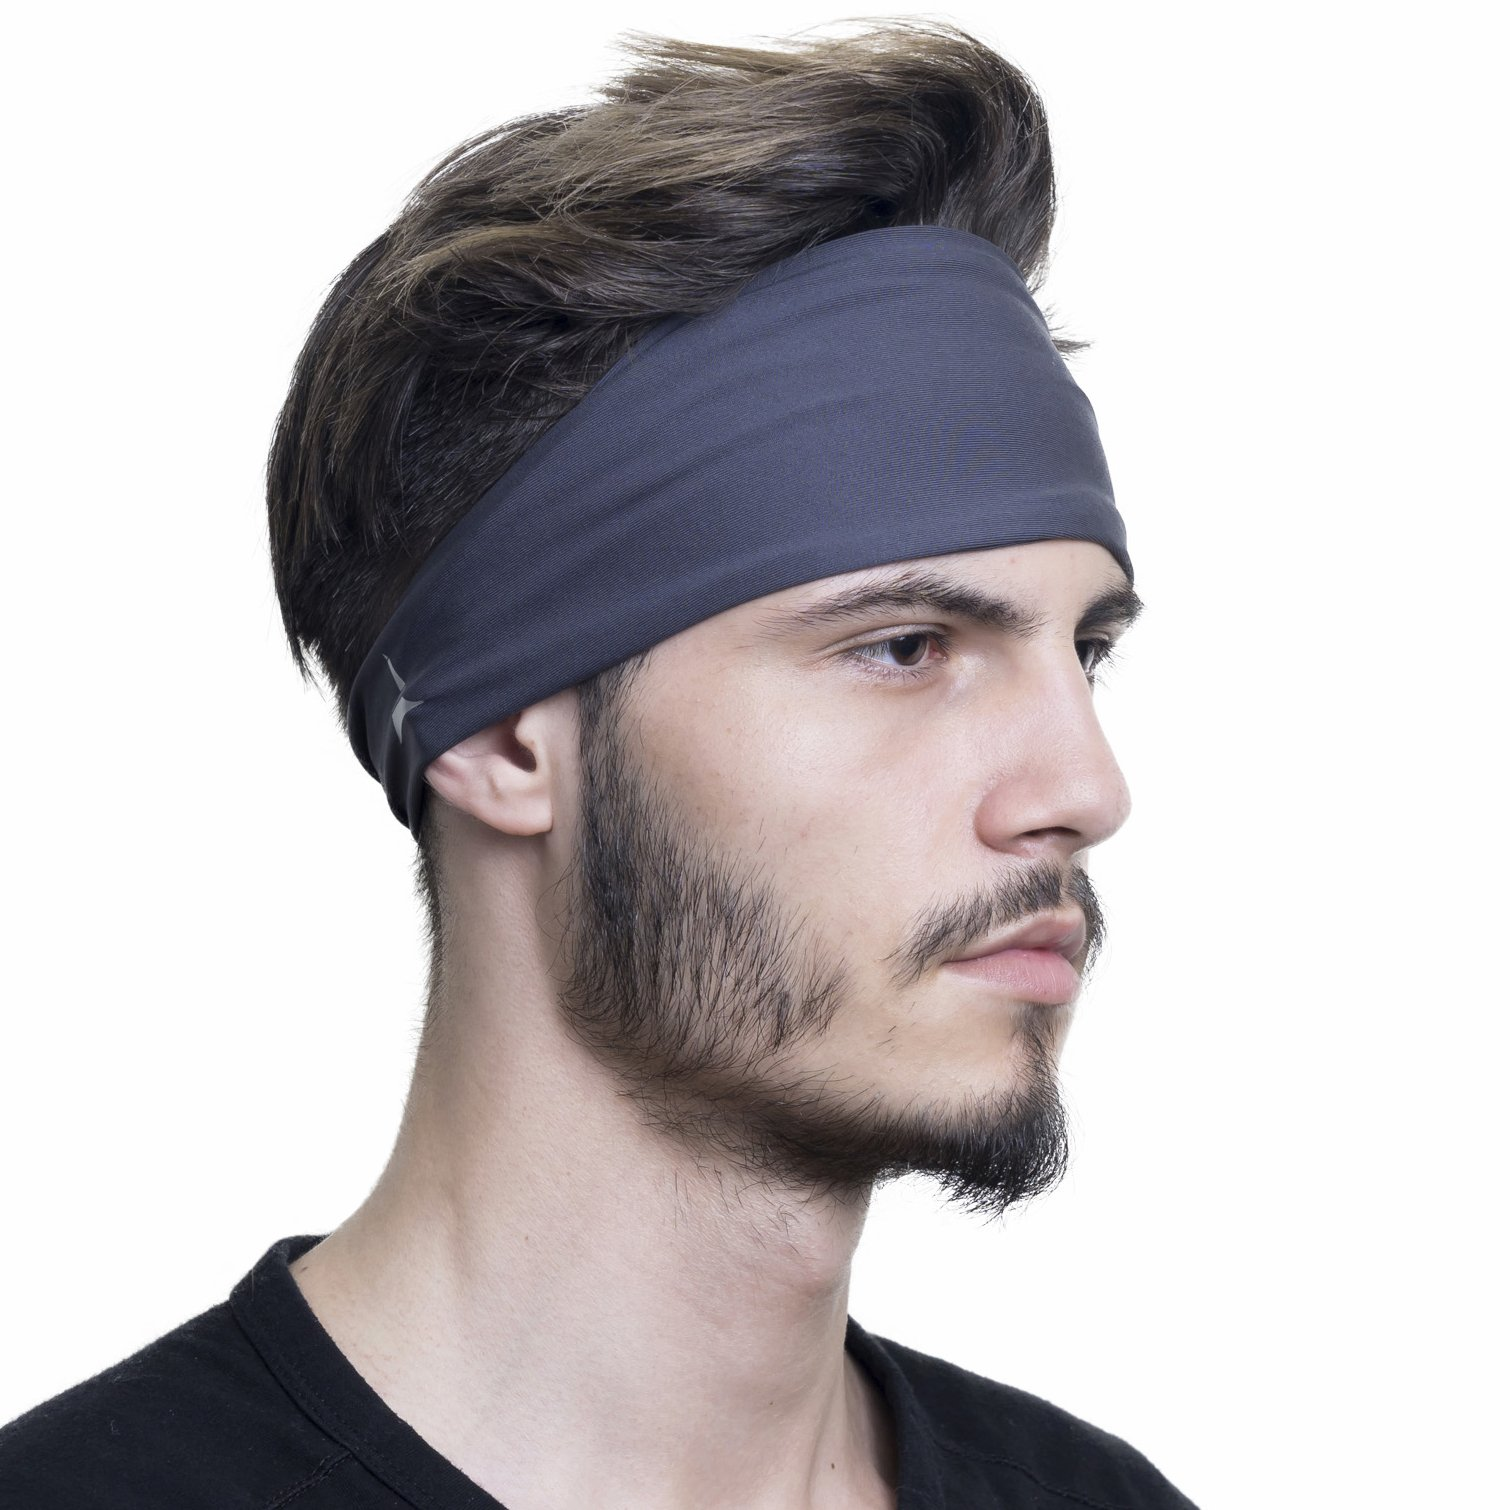 French Fitness Revolution Mens Headband - Guys Sweatband & Sports Headband for Running, Crossfit, Working Out and Dominating Your Competition - Performance Stretch & Moisture Wicking by French Fitness Revolution (Image #1)